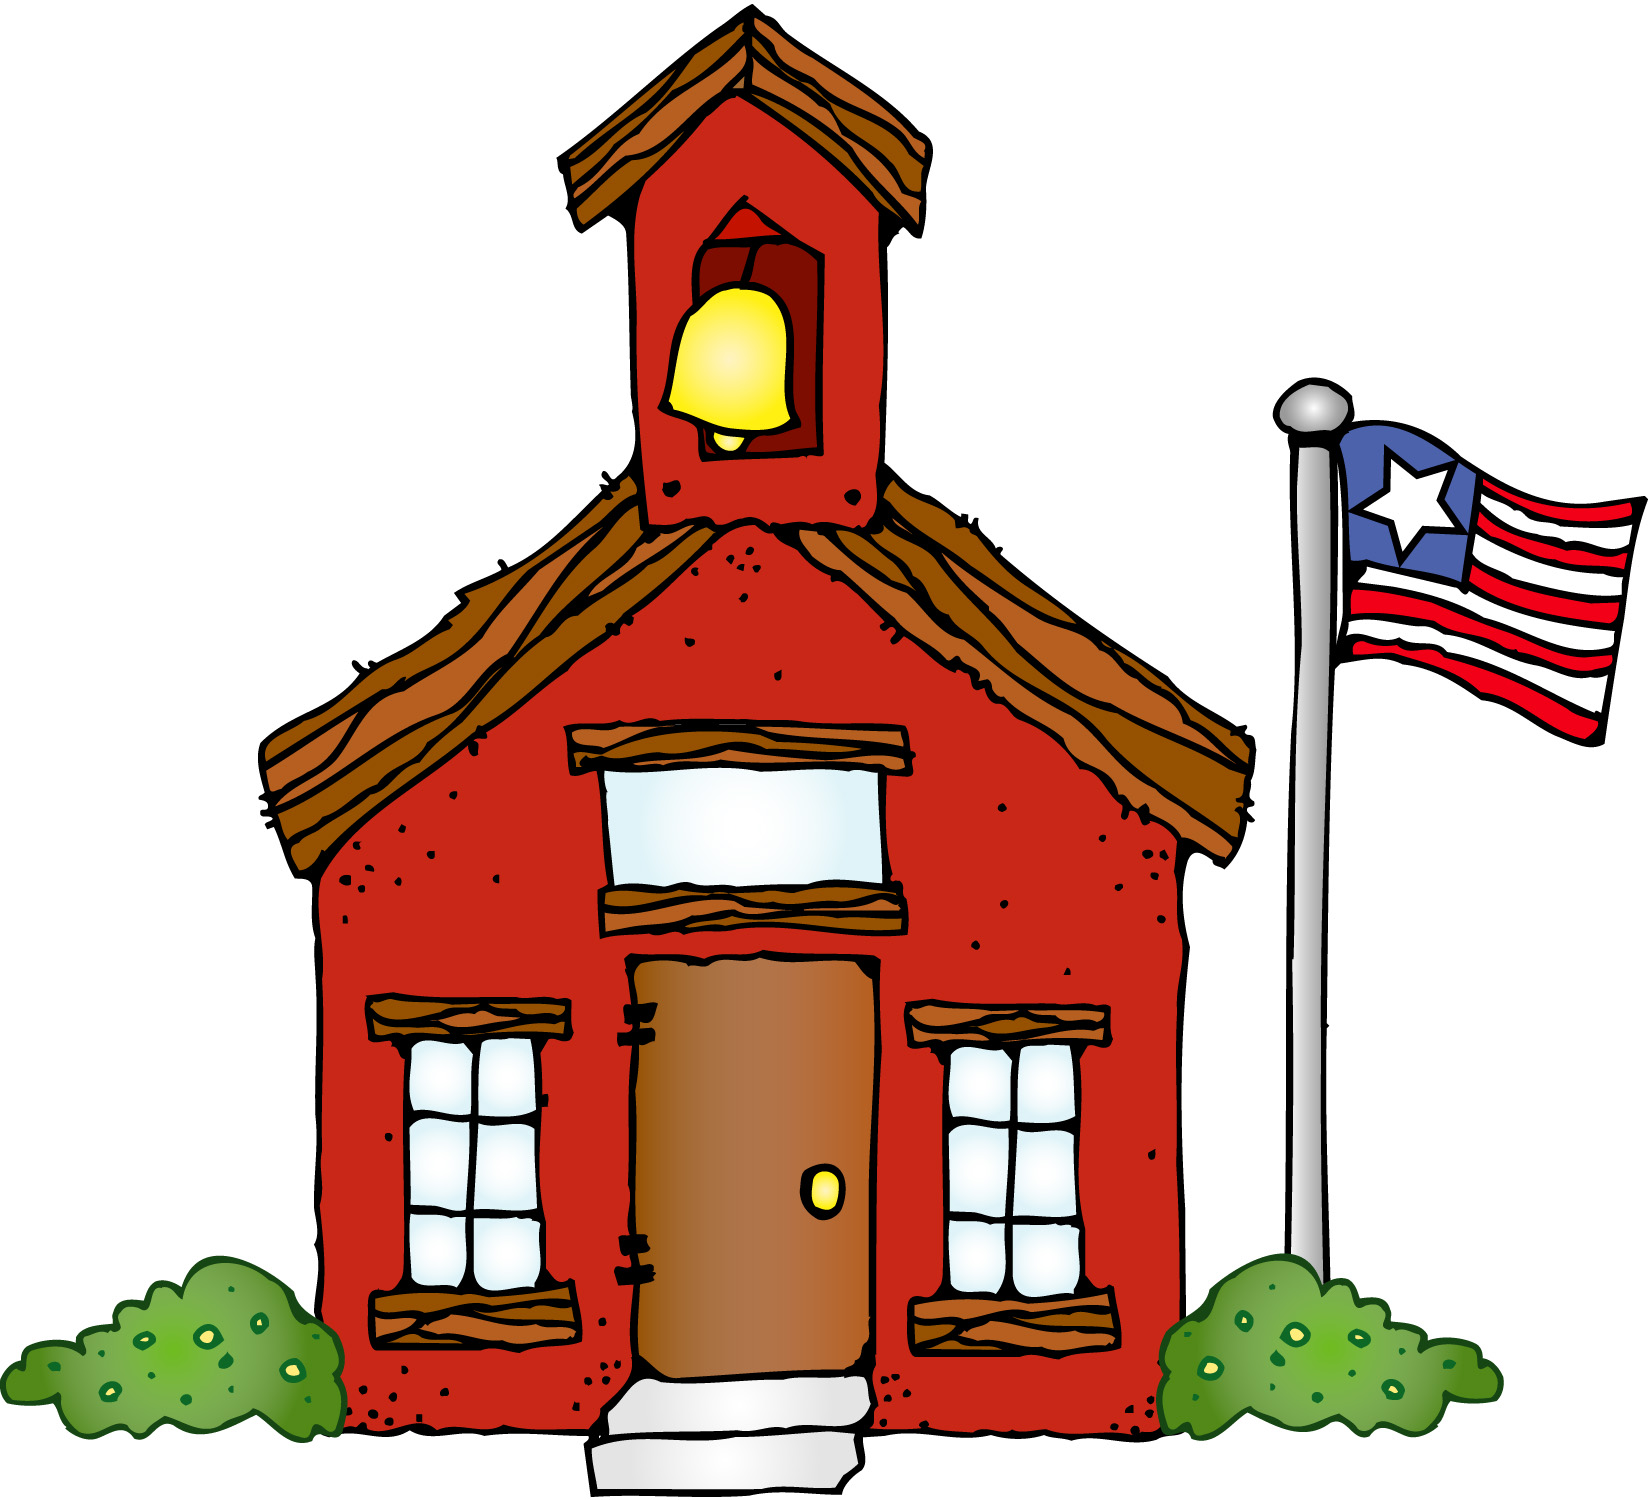 Schoolhouse school house images free clipart 4